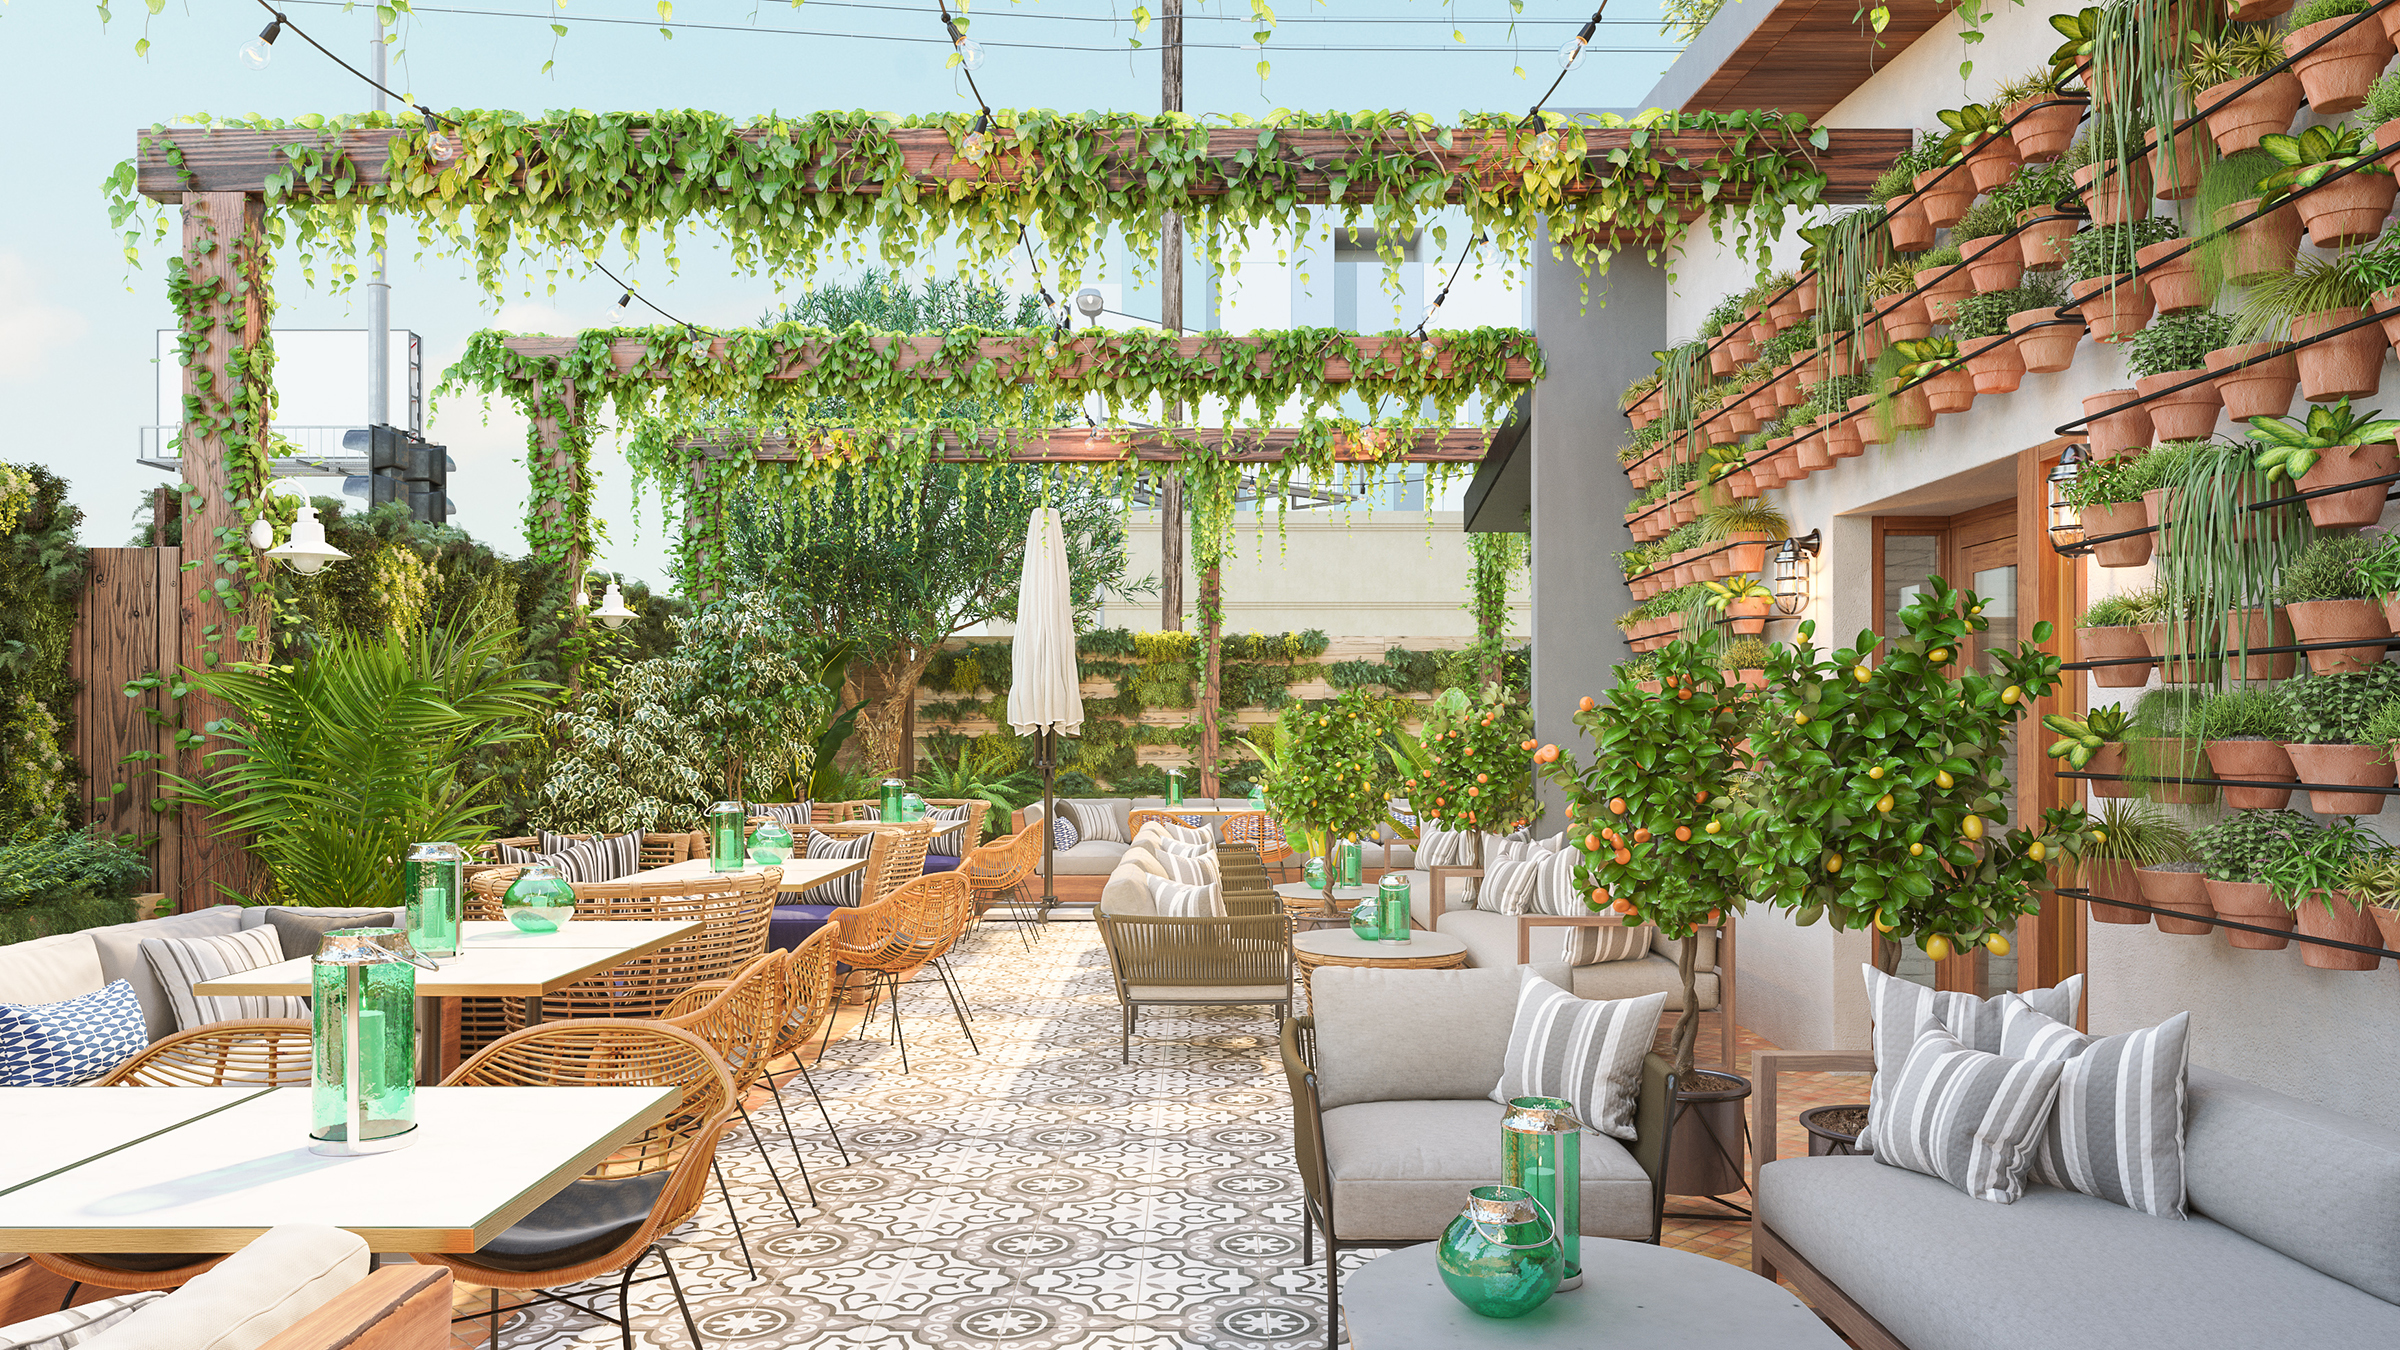 L.A.'s long-awaited cannabis café opens this month